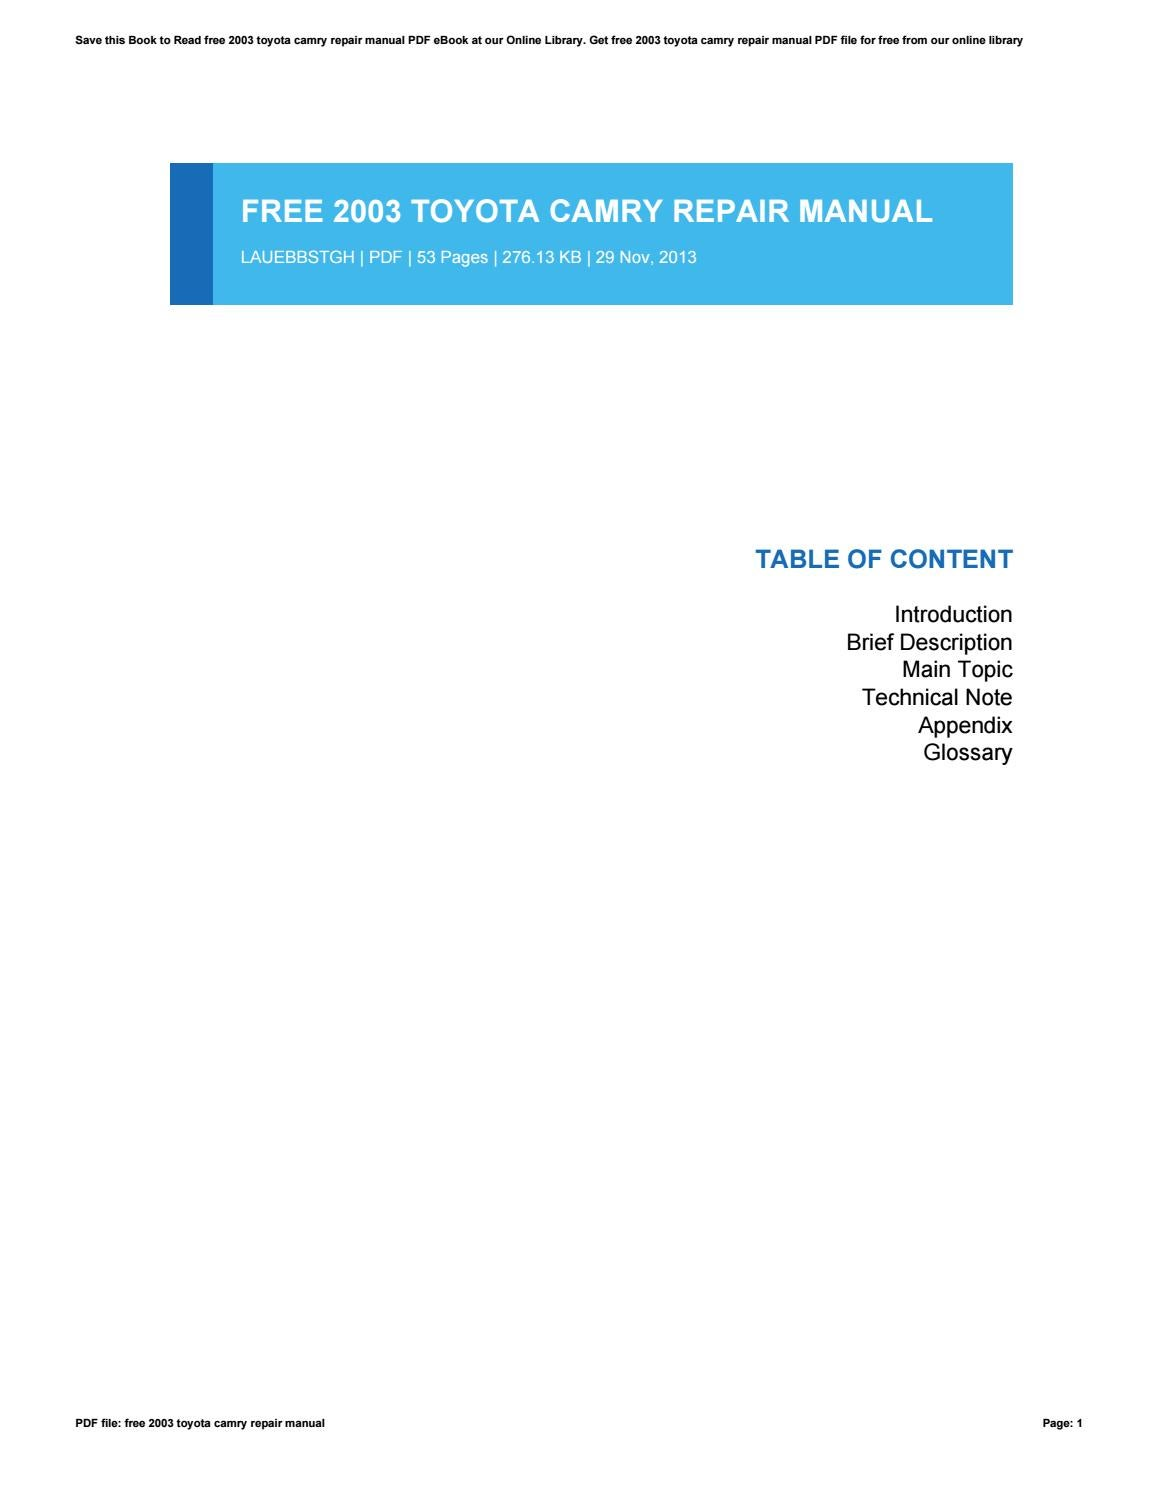 2003 toyota camry owners manual pdf free download